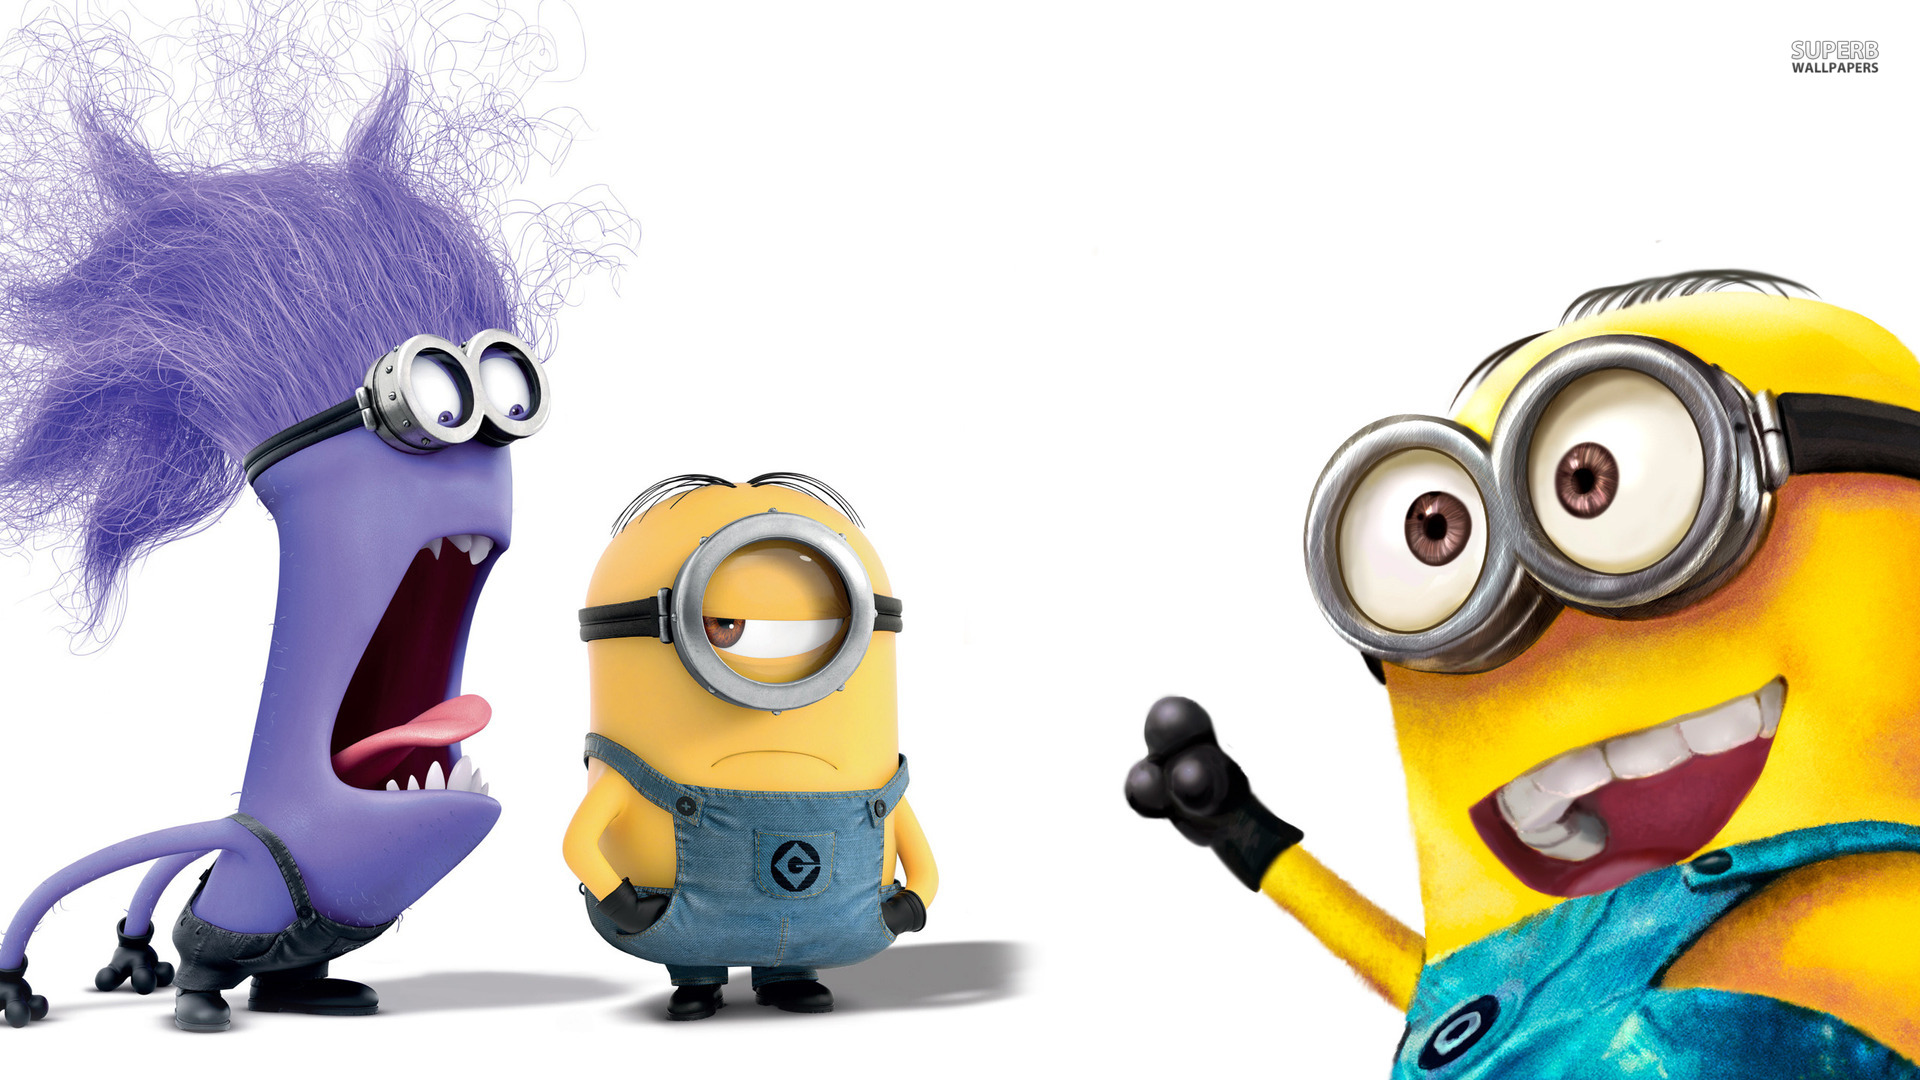 Minions Wallpapers For Desktop And Mobile Devices